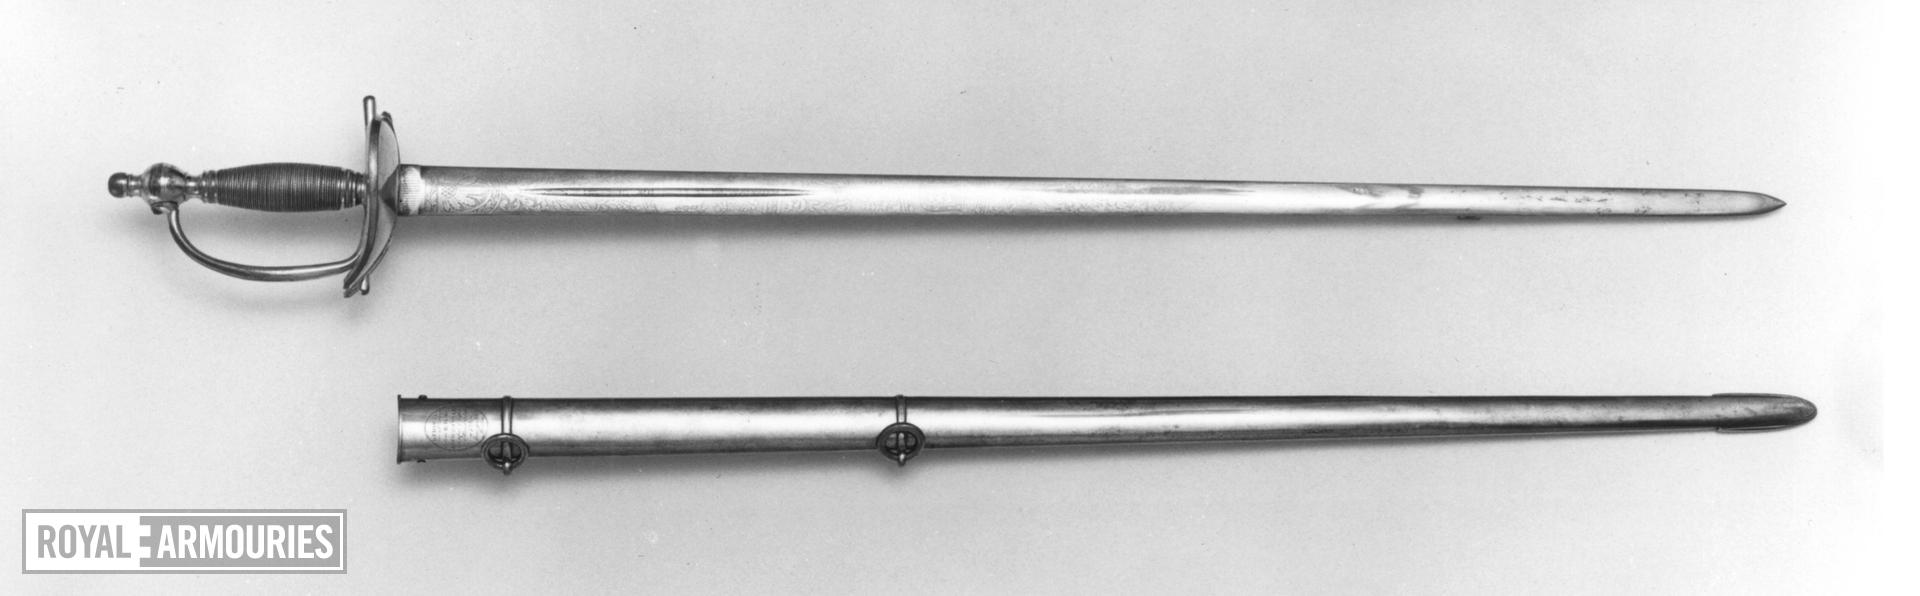 Sword and scabbard Heavy cavalry officer's sword and scabbard, similar to dress Pattern 1796, by Reddell.